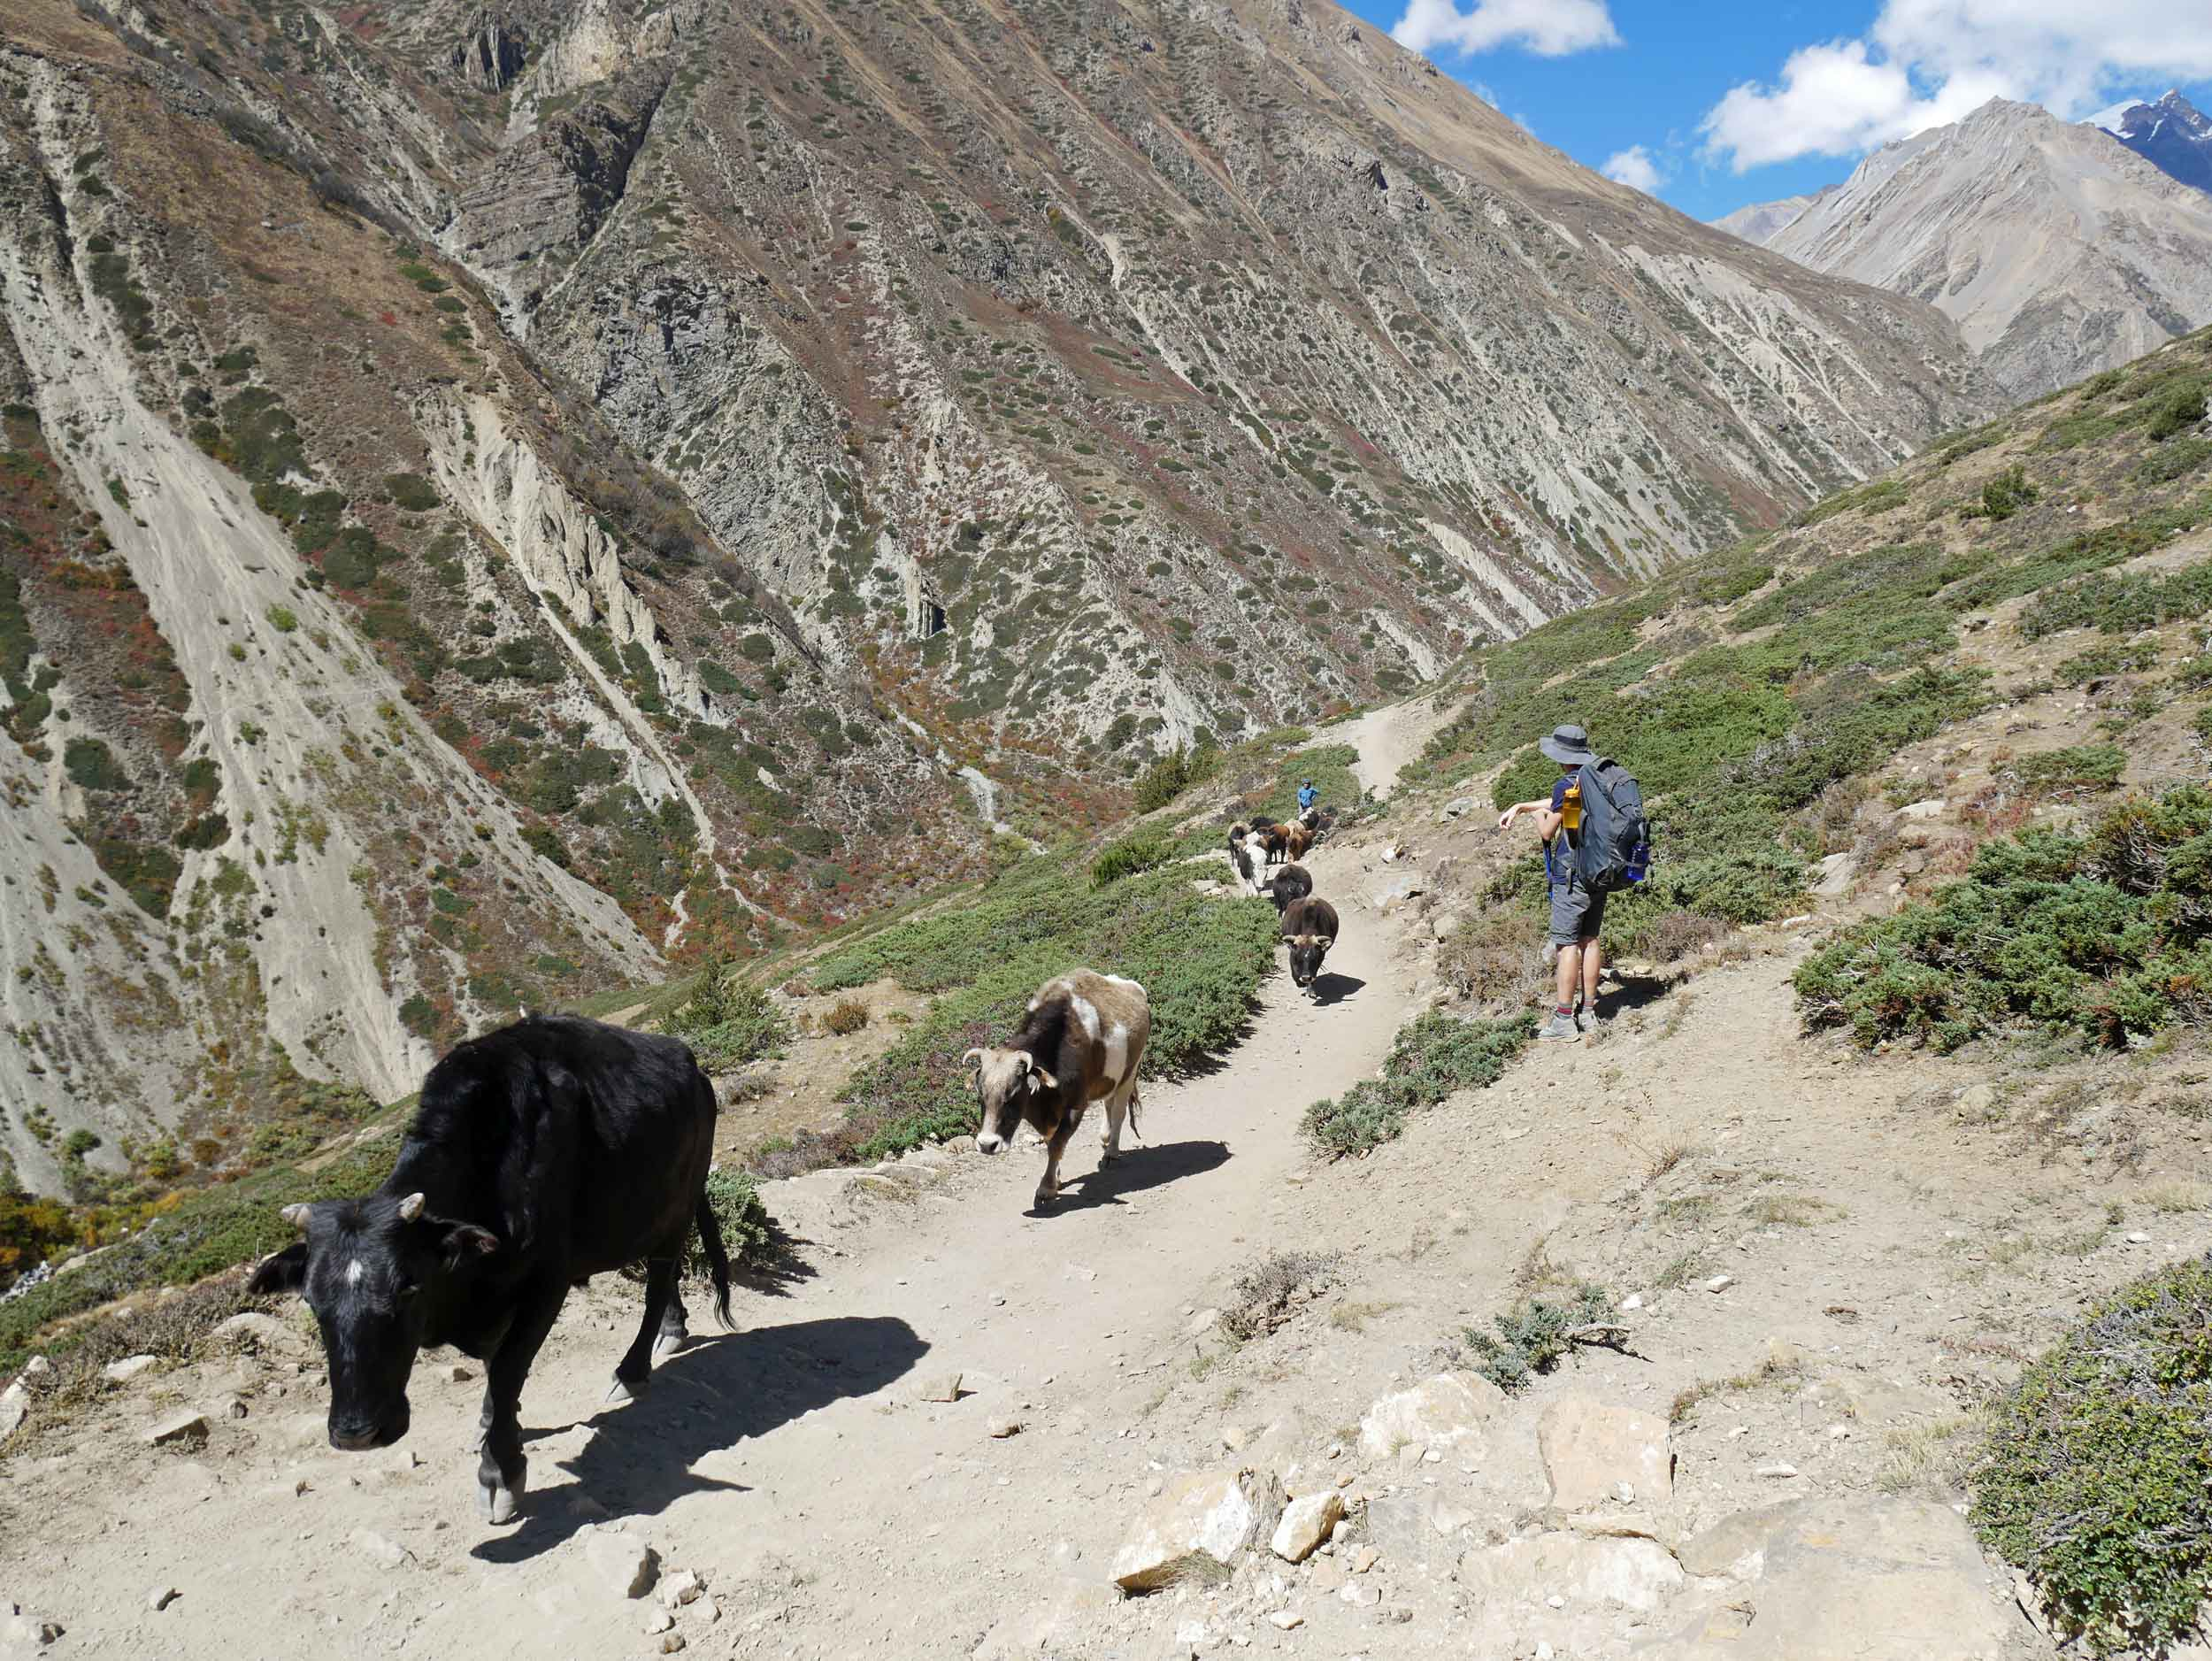 Rush hour along the trail continues -this time with cows instead of goats.